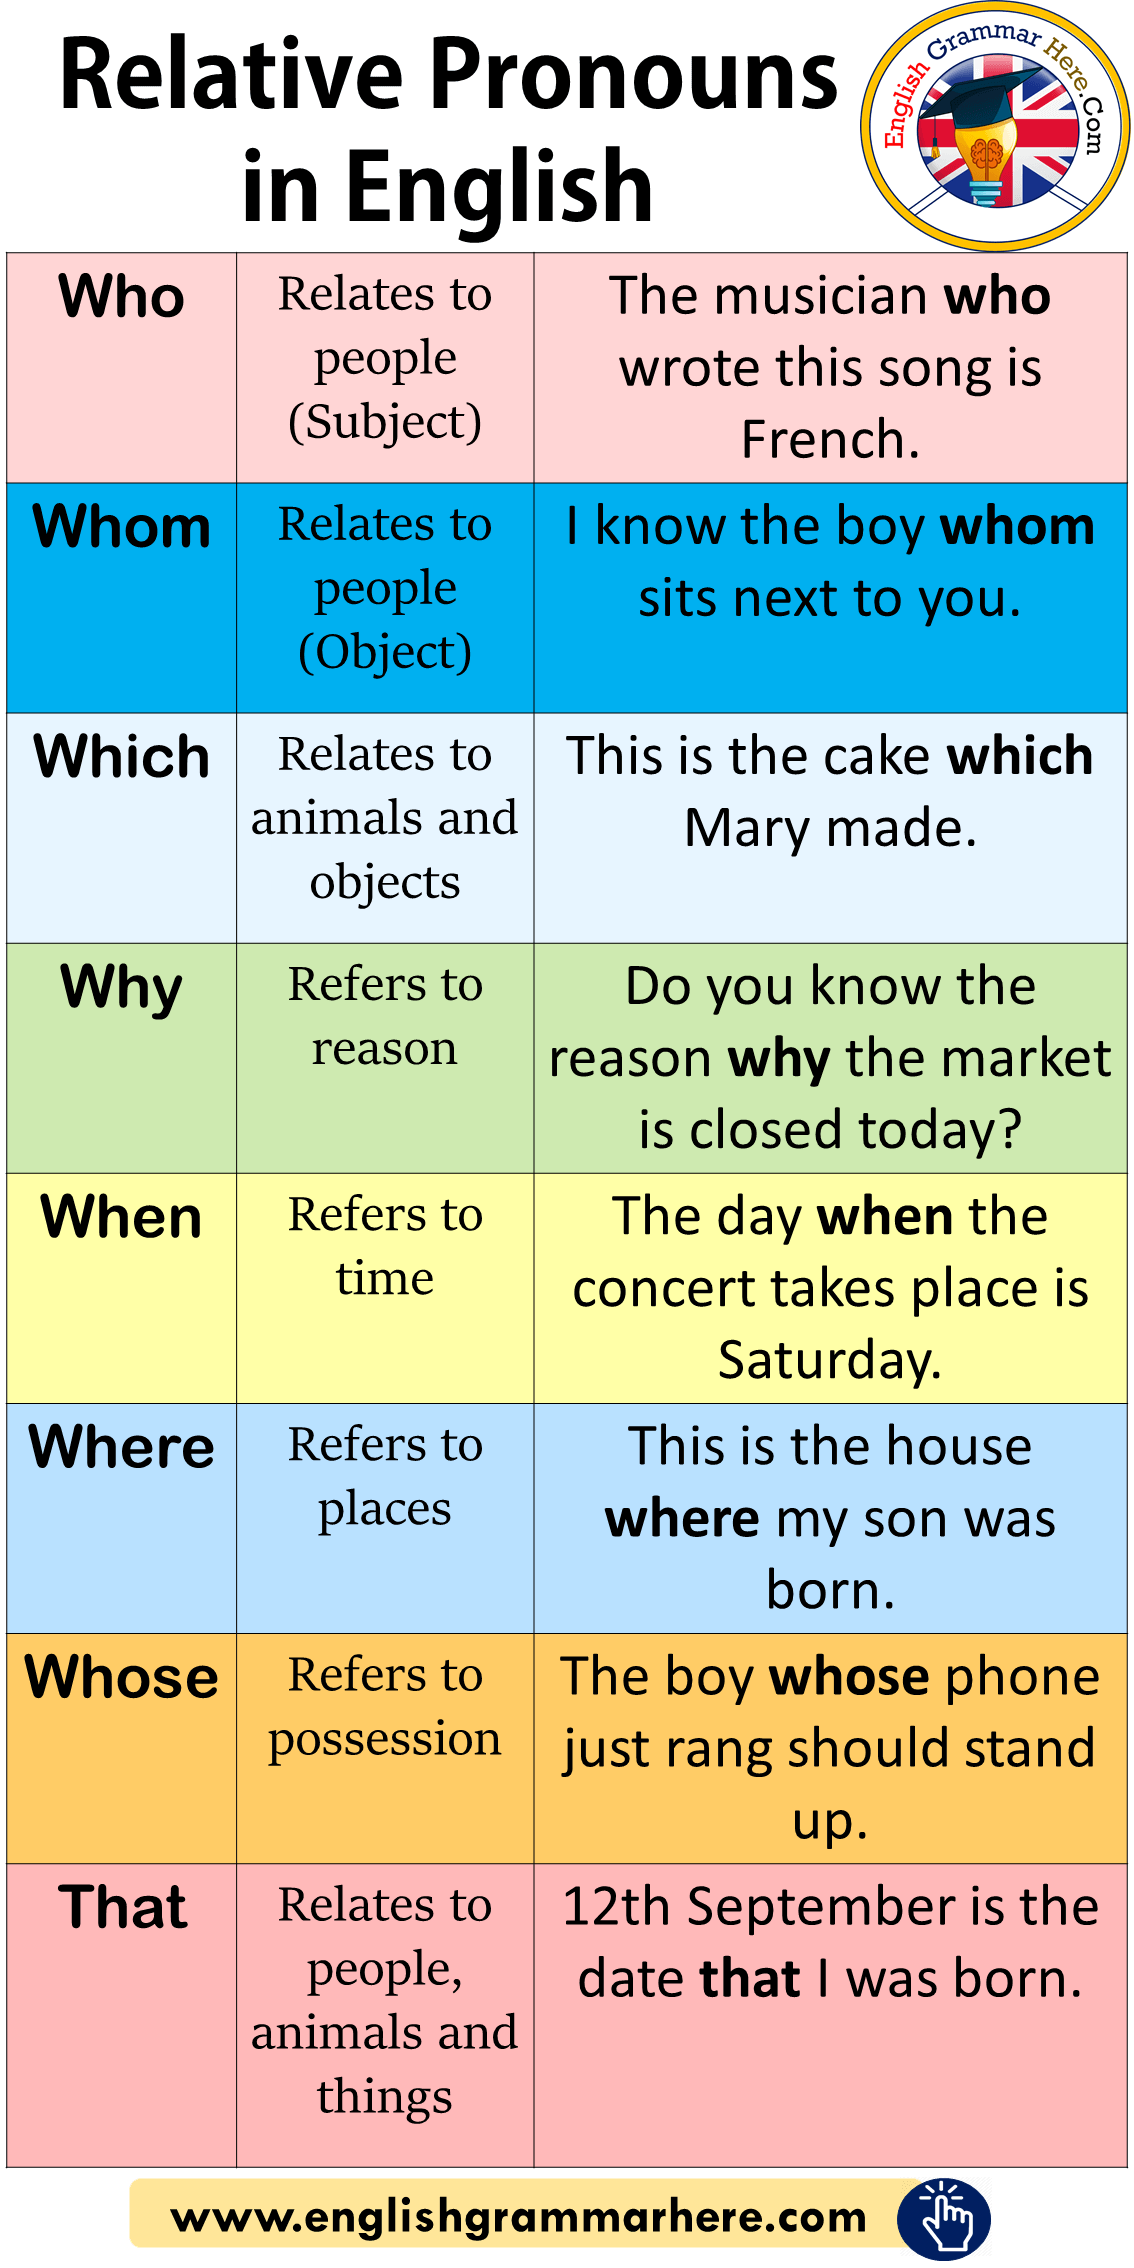 Relative Pronouns in English, Meaning and Example Sentences